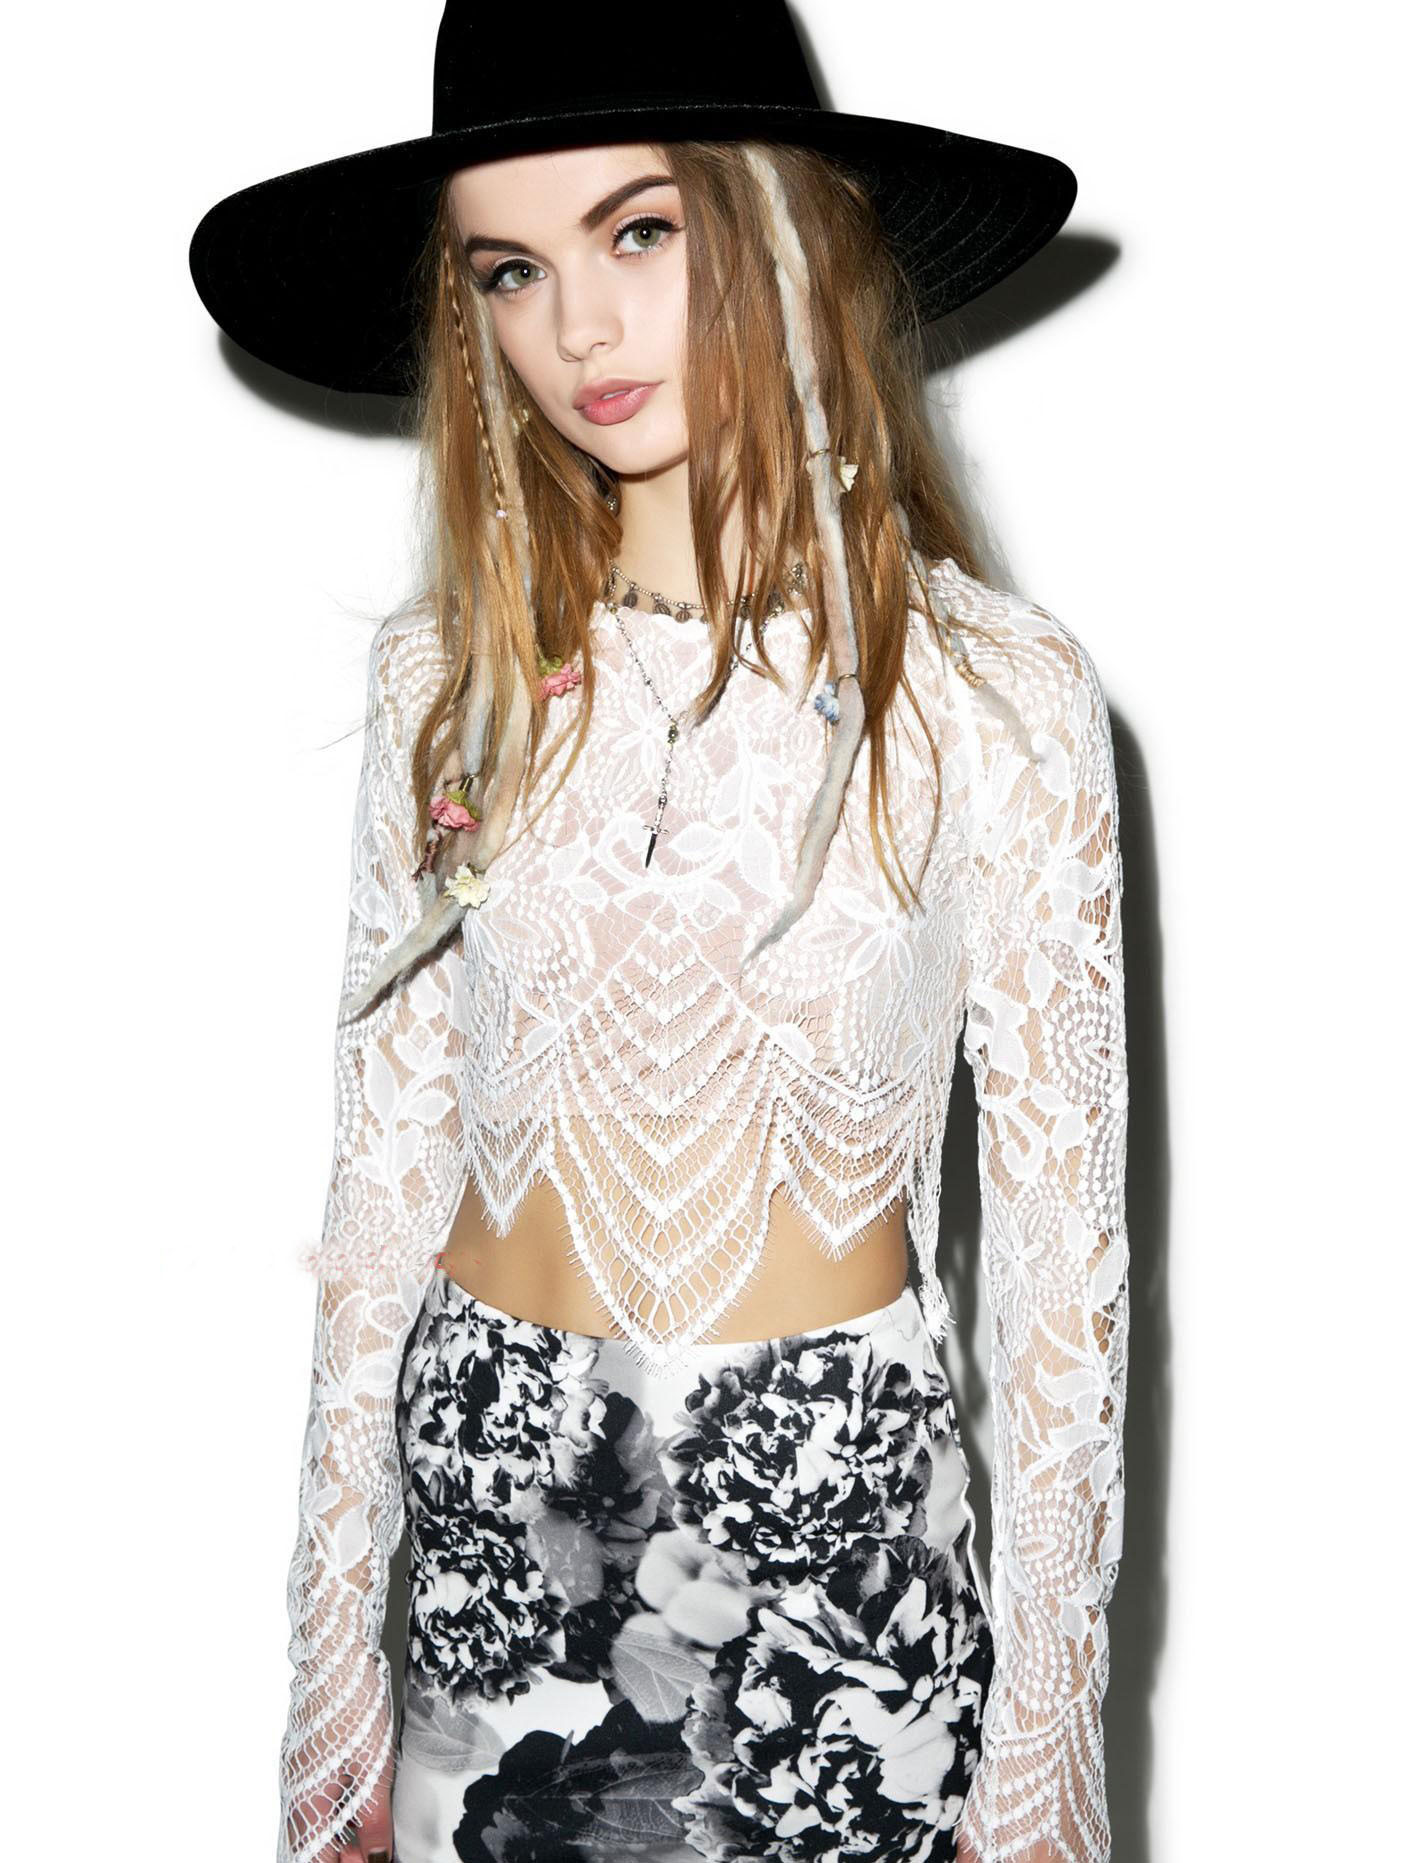 b8454b3ba33 Get Quotations · Lace Crop Top And dress Set Summer 2015 Hollow Out Solid  White Flower Lace Long Sleeve